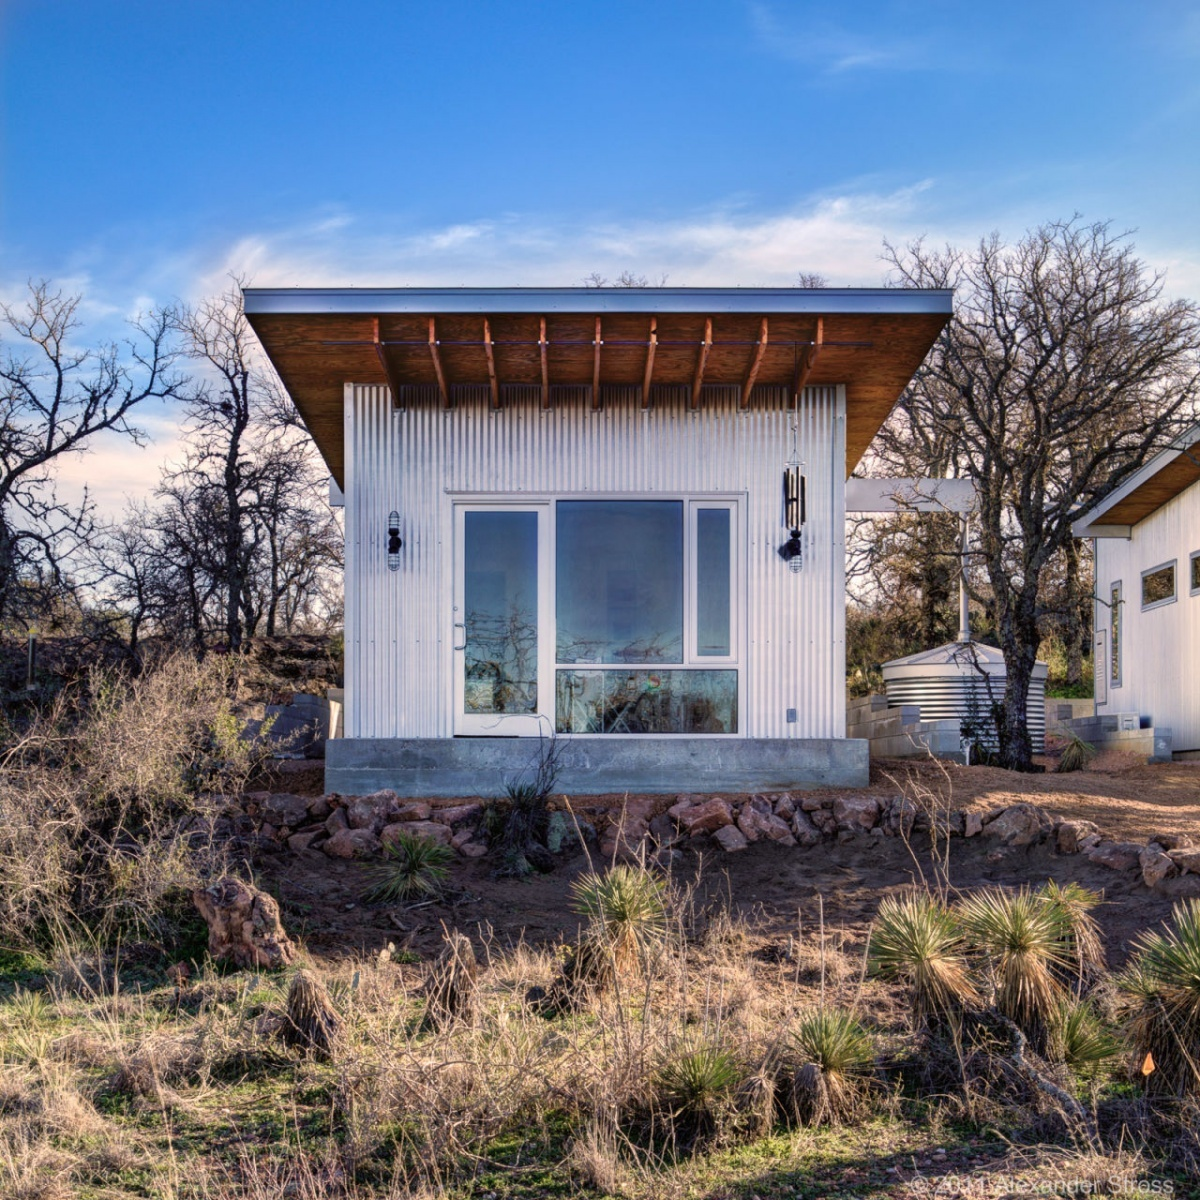 ^ Group of Best Friends Build iny House ommunity - he Shelter Blog